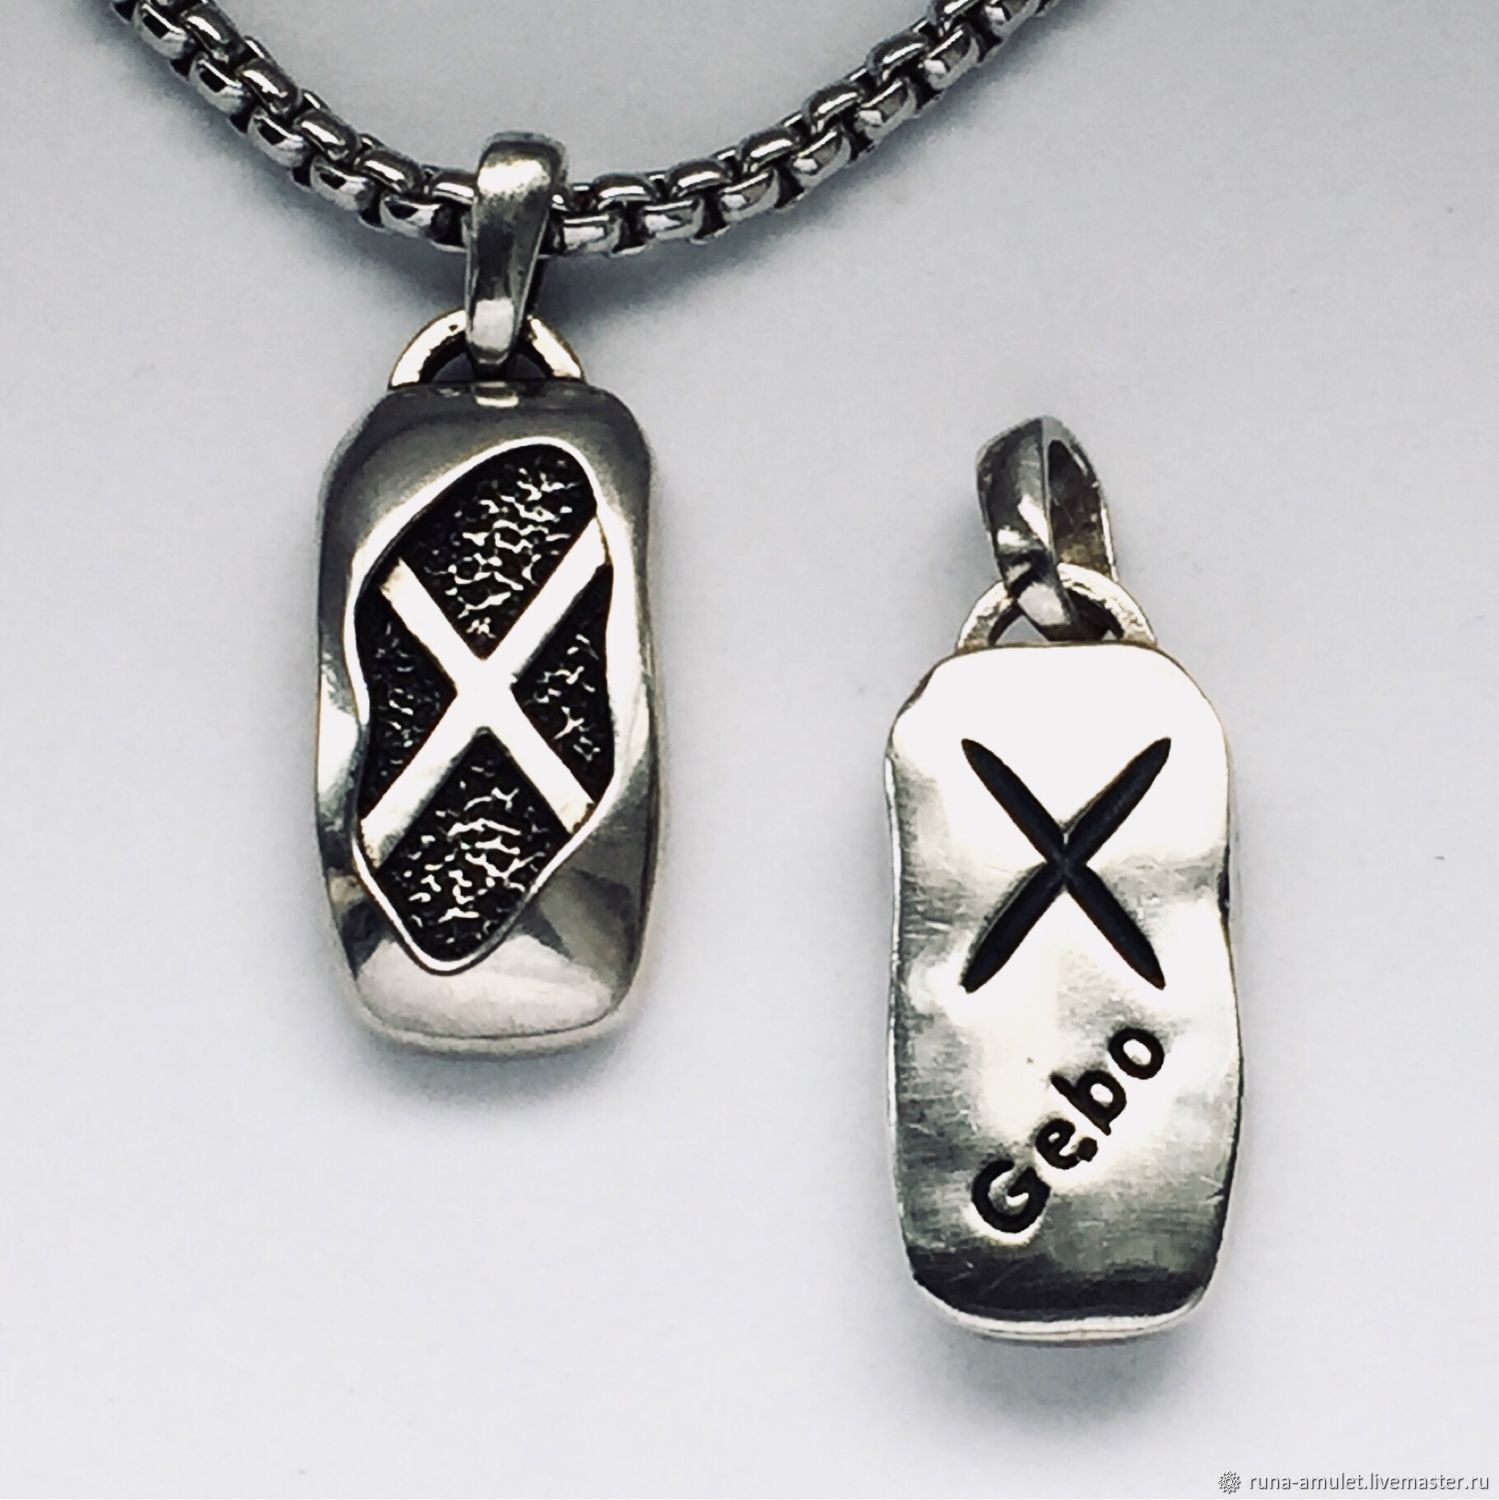 ccc6ec384d304 Support, care, love - Amulet Gebo silver, talisman, amulet – shop online on  Livemaster with shipping - E29DJCOM | Moscow